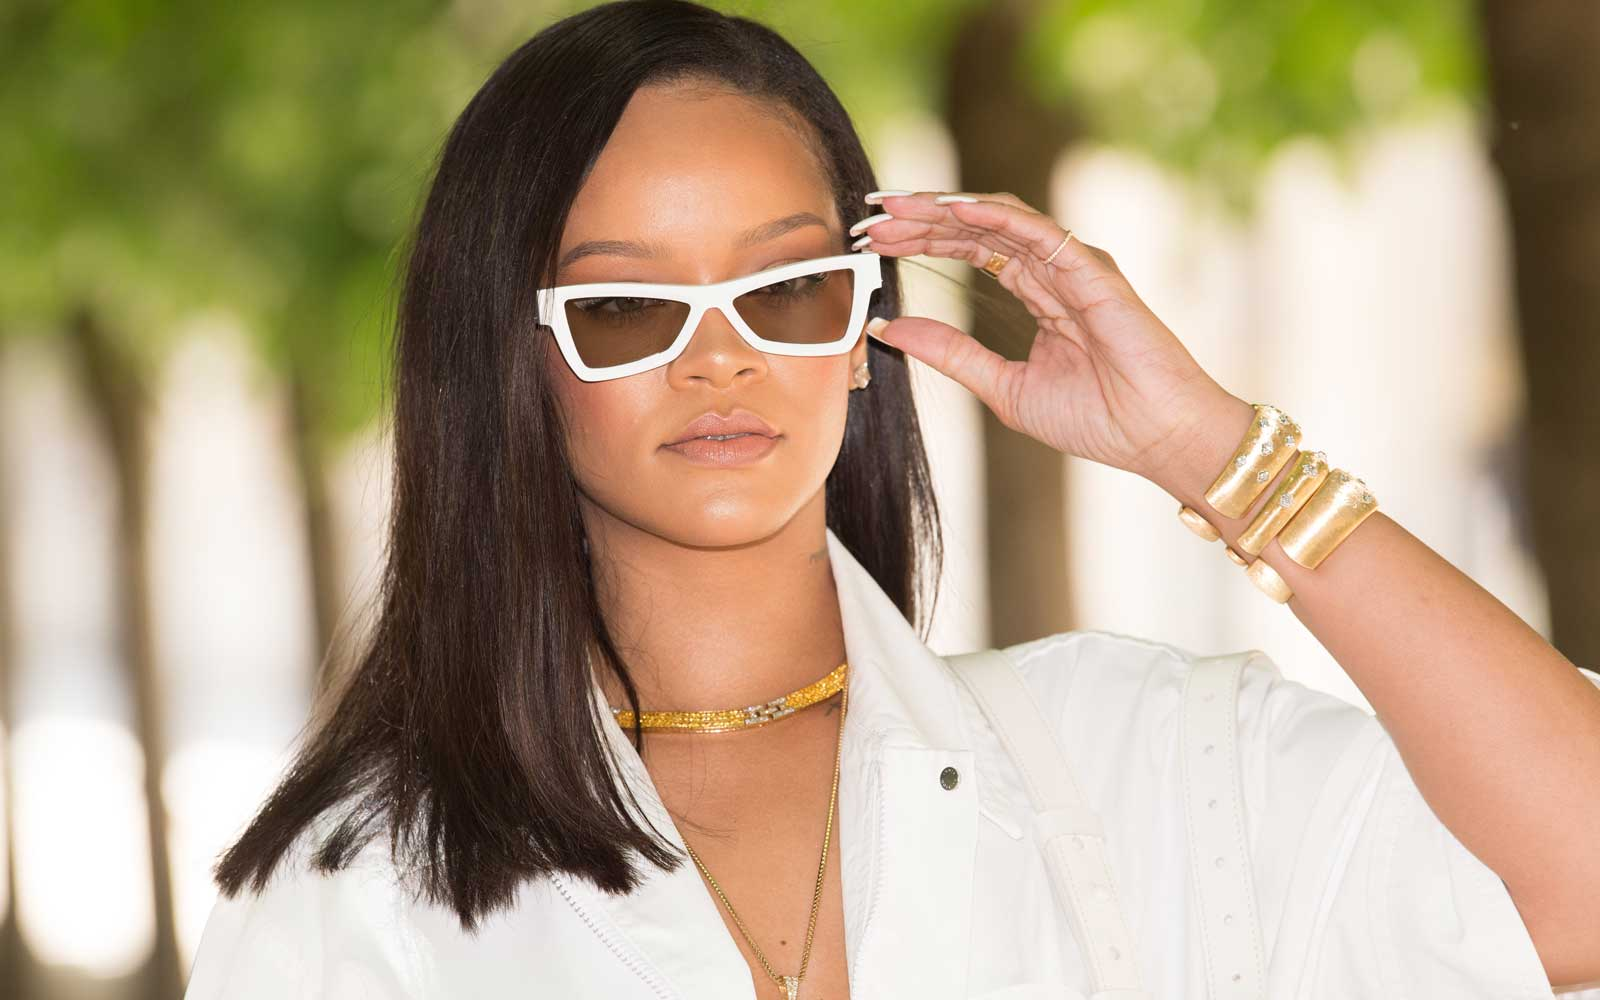 Rihanna Skipped the VMAs to Go to Cuba and She's Definitely Not Regretting It